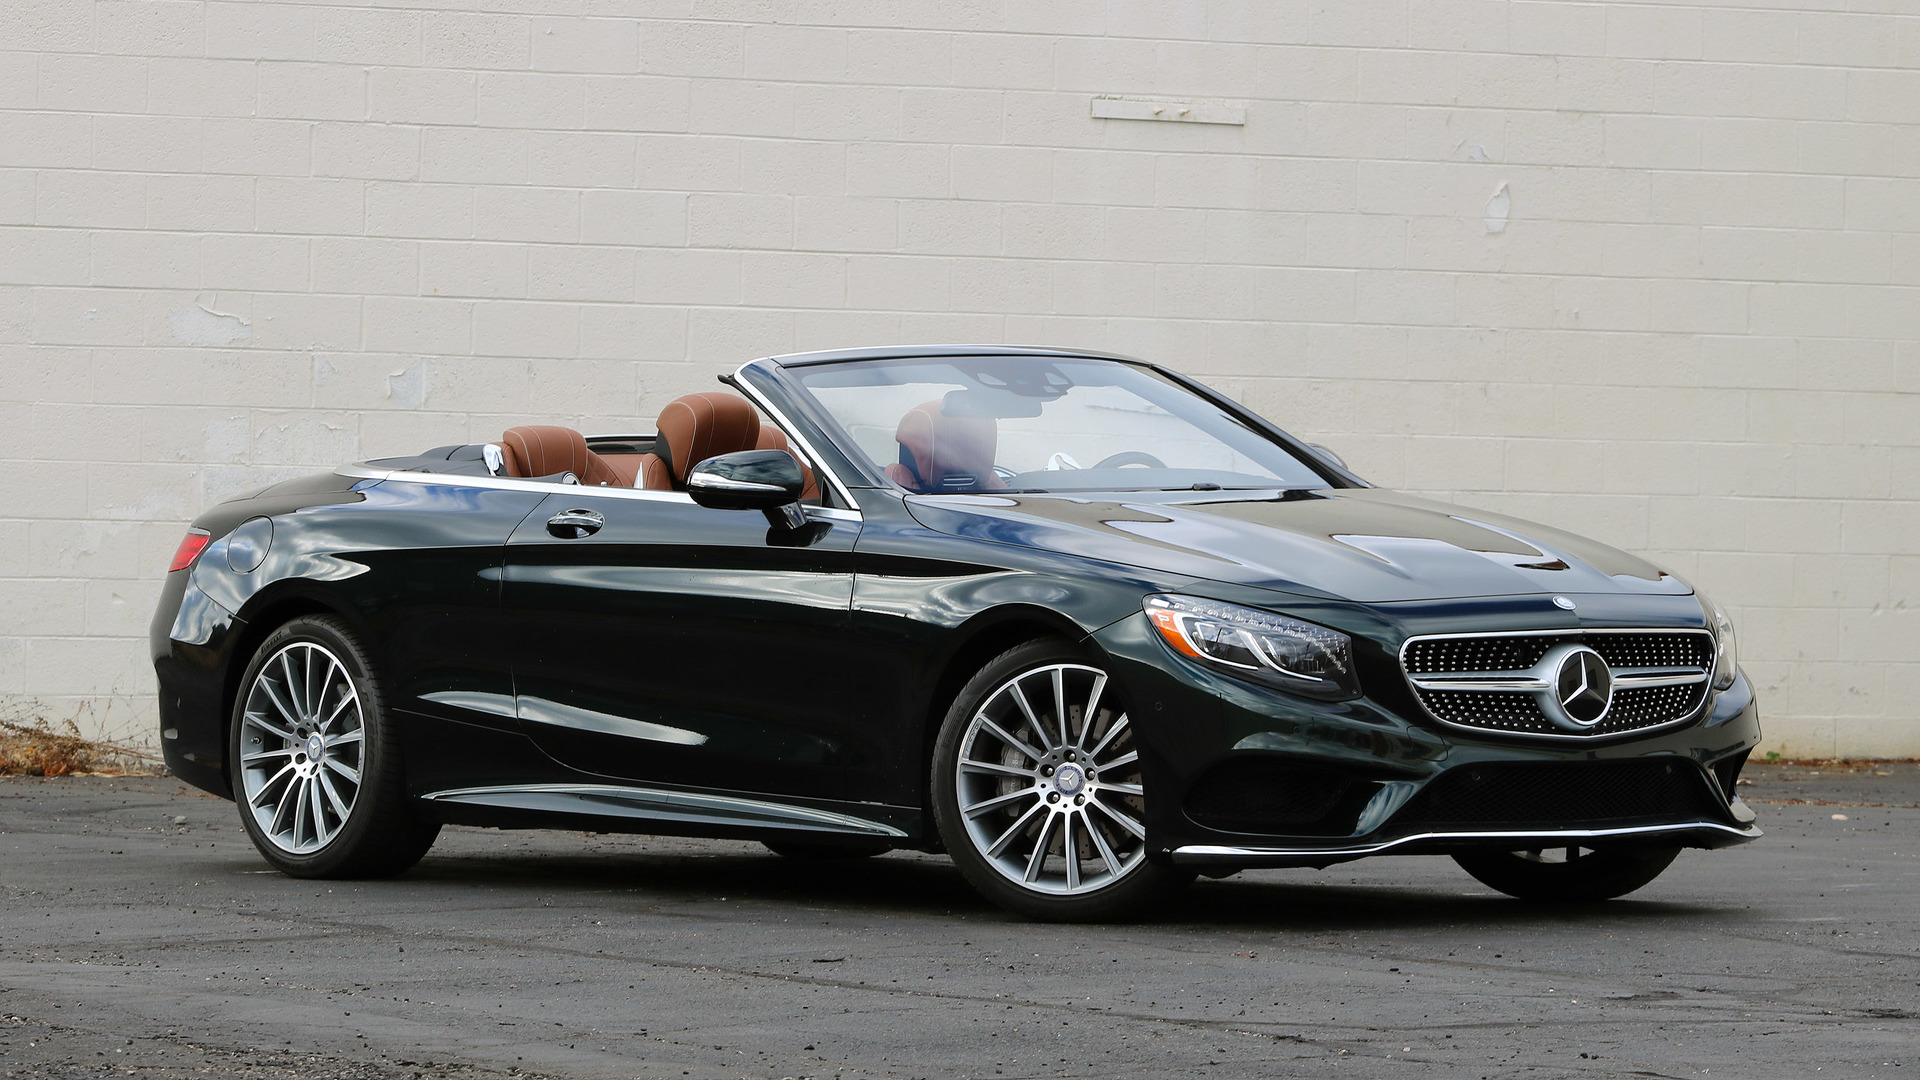 2017 mercedes benz s550 cabriolet review all the luxury for Mercedes benz s550 pictures